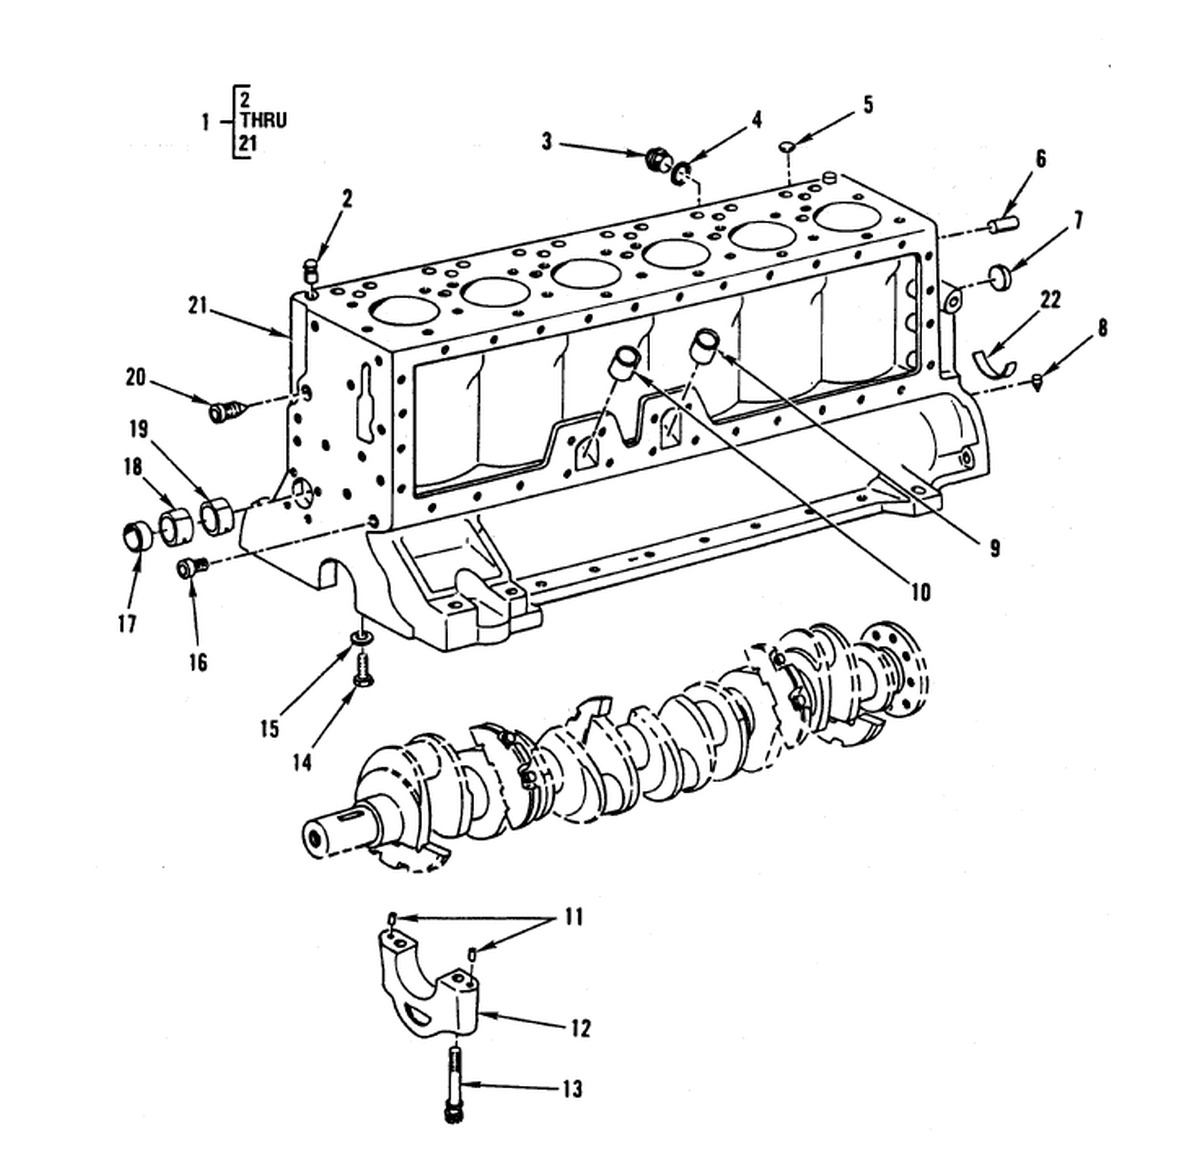 0003 00-2 Figure 2. Crankcase, Block, and Cylinder Head